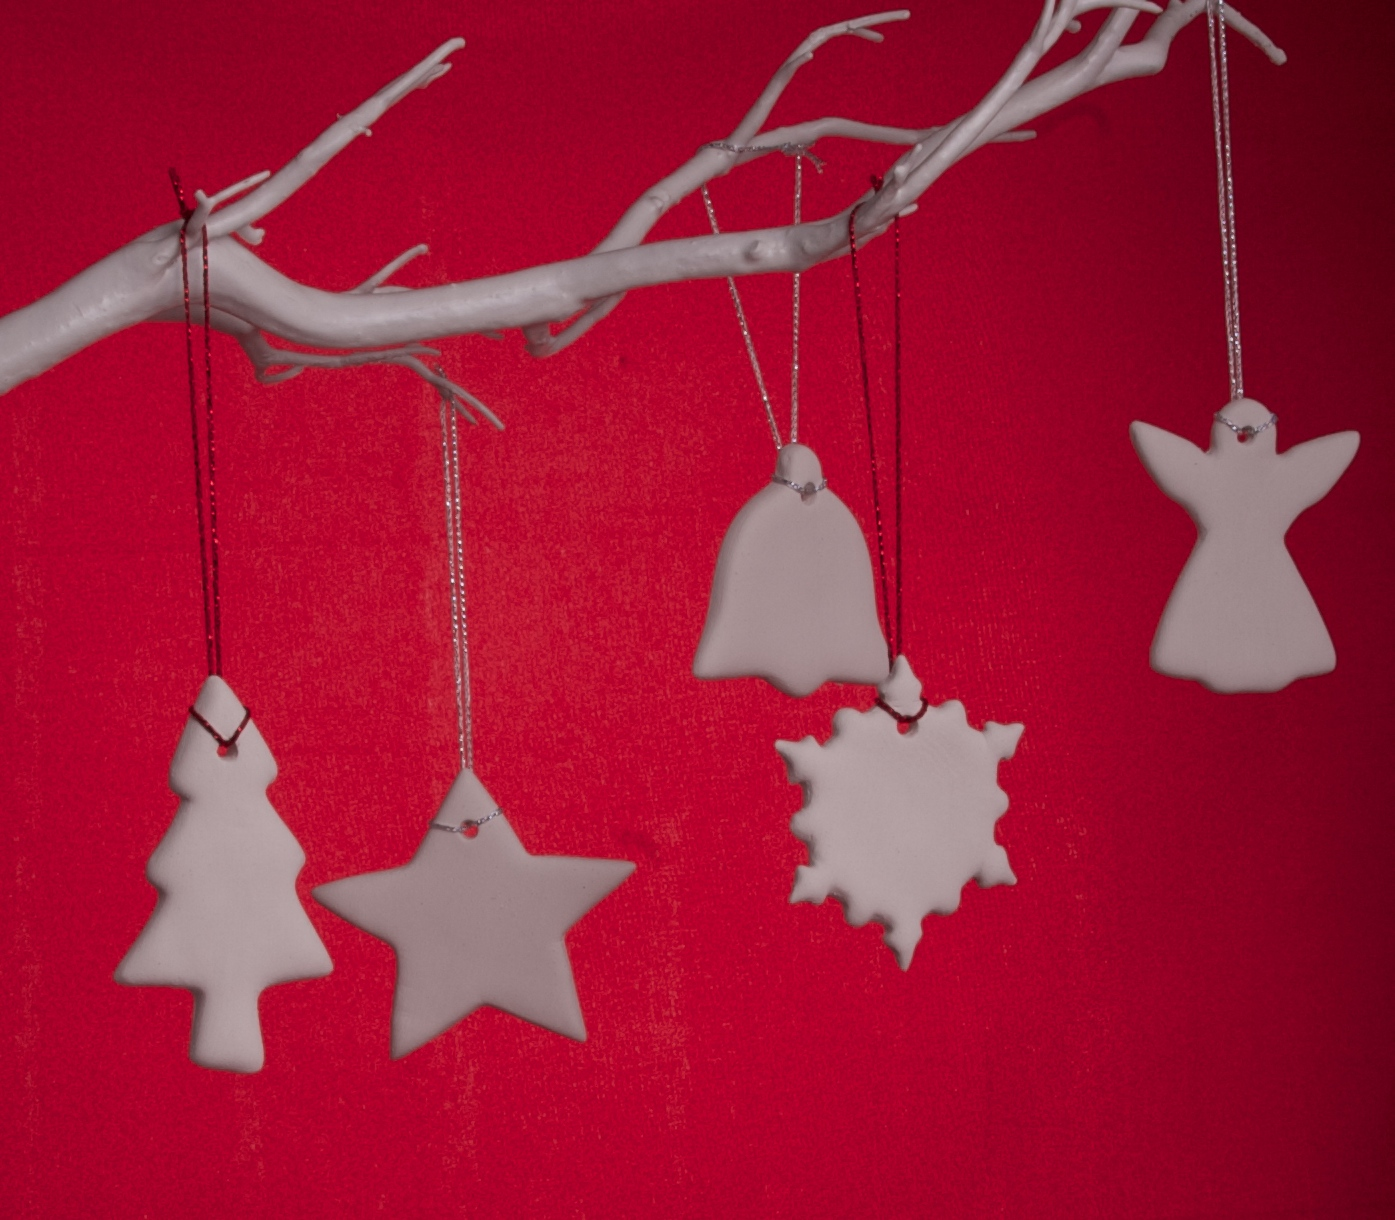 Handmade White Clay Christmas Decorations - £2.50 each or 5 for £10 + p&p